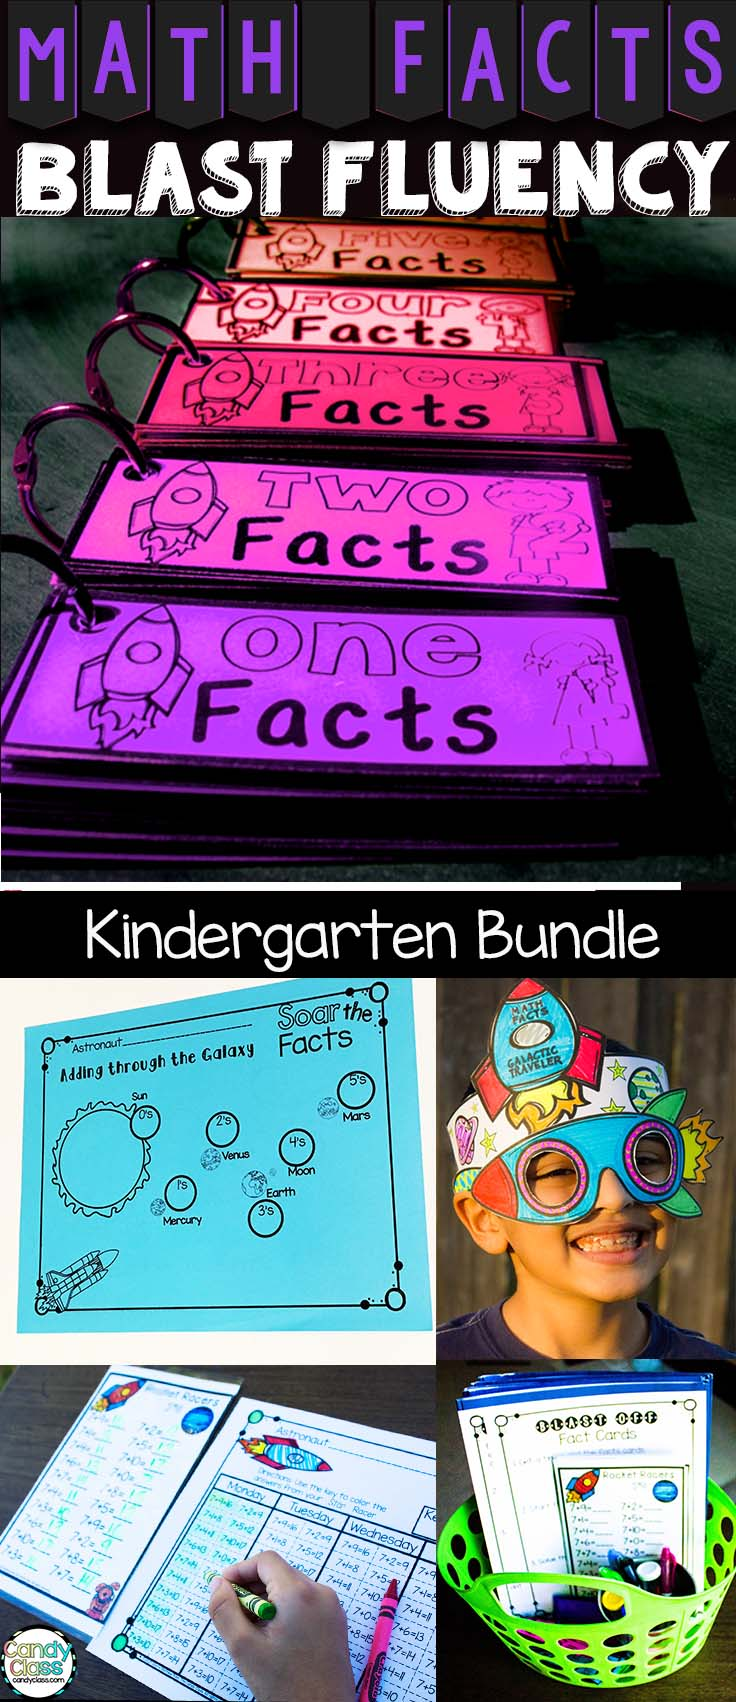 This set covers kindergarten math facts fluency for addition and subtraction facts within 5 and 10